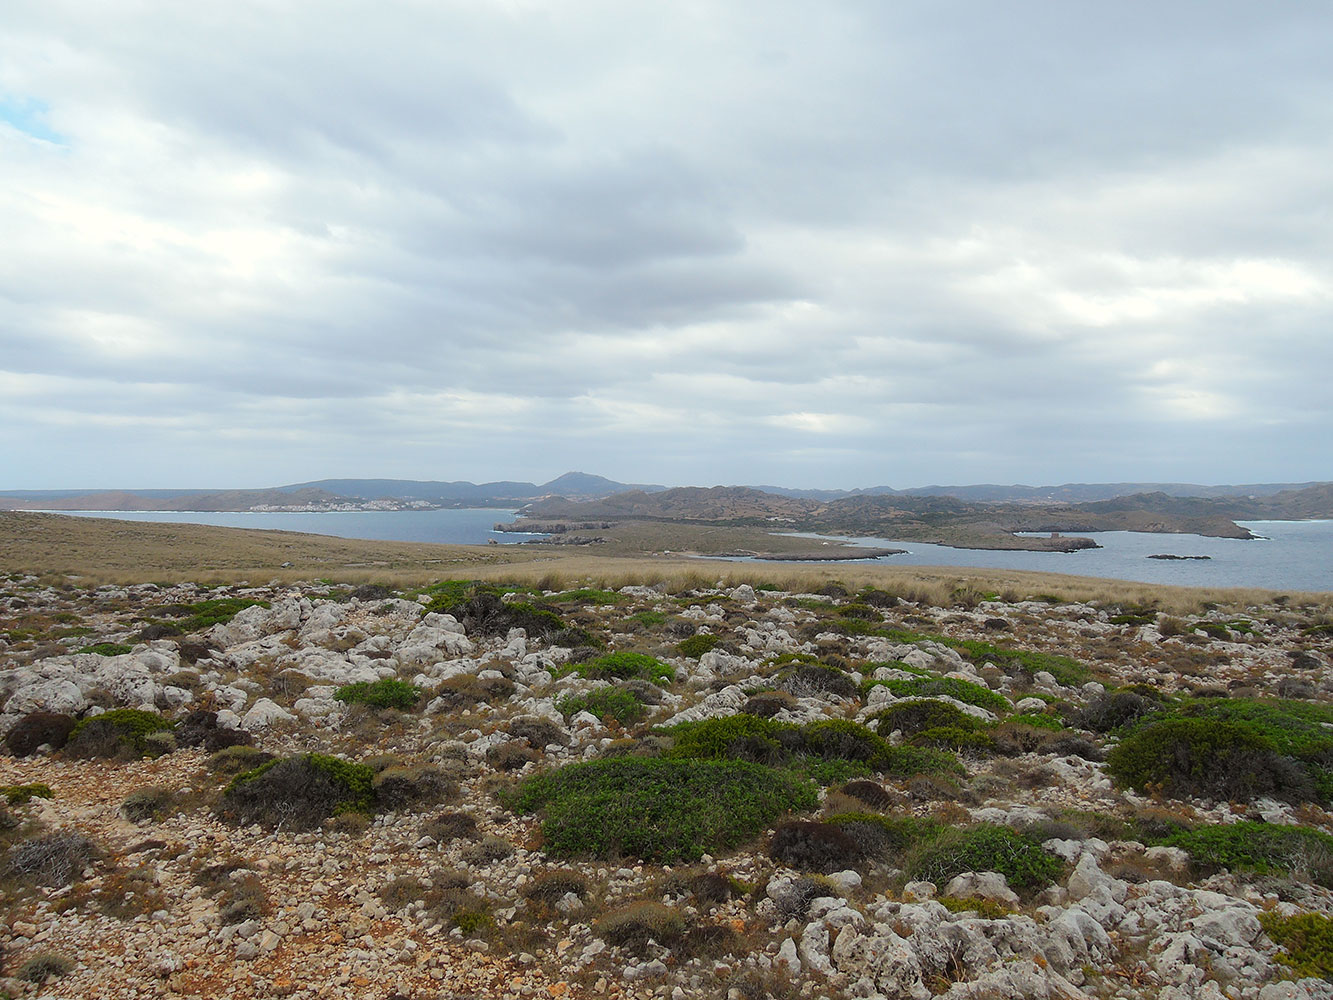 cap-de-cavalleria-menorca-looking-south